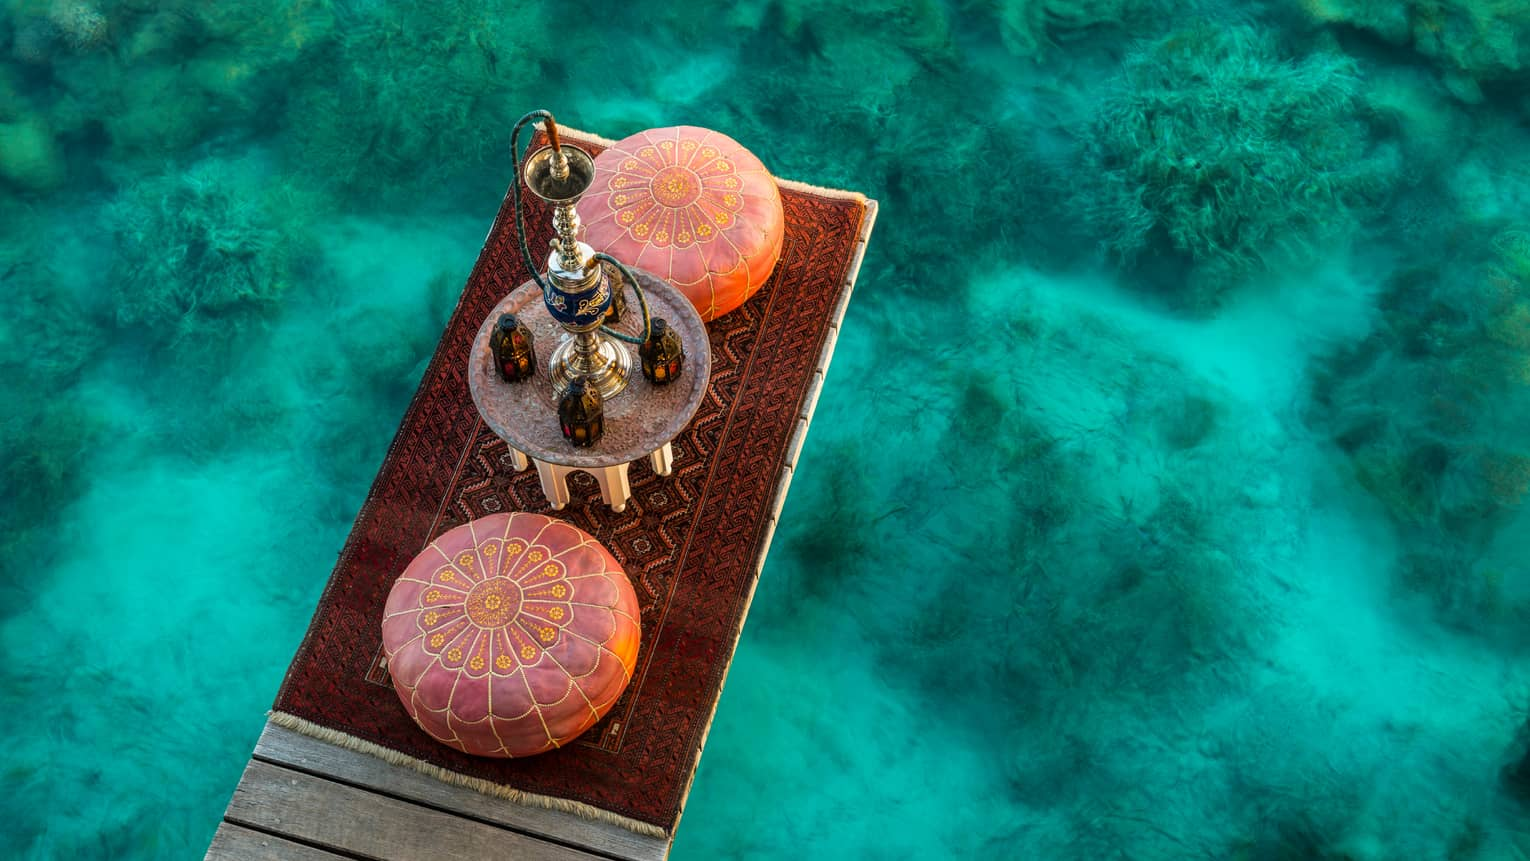 Aerial view of shisha pipe, two round cushions, red carpet on dock over turquoise lagoon